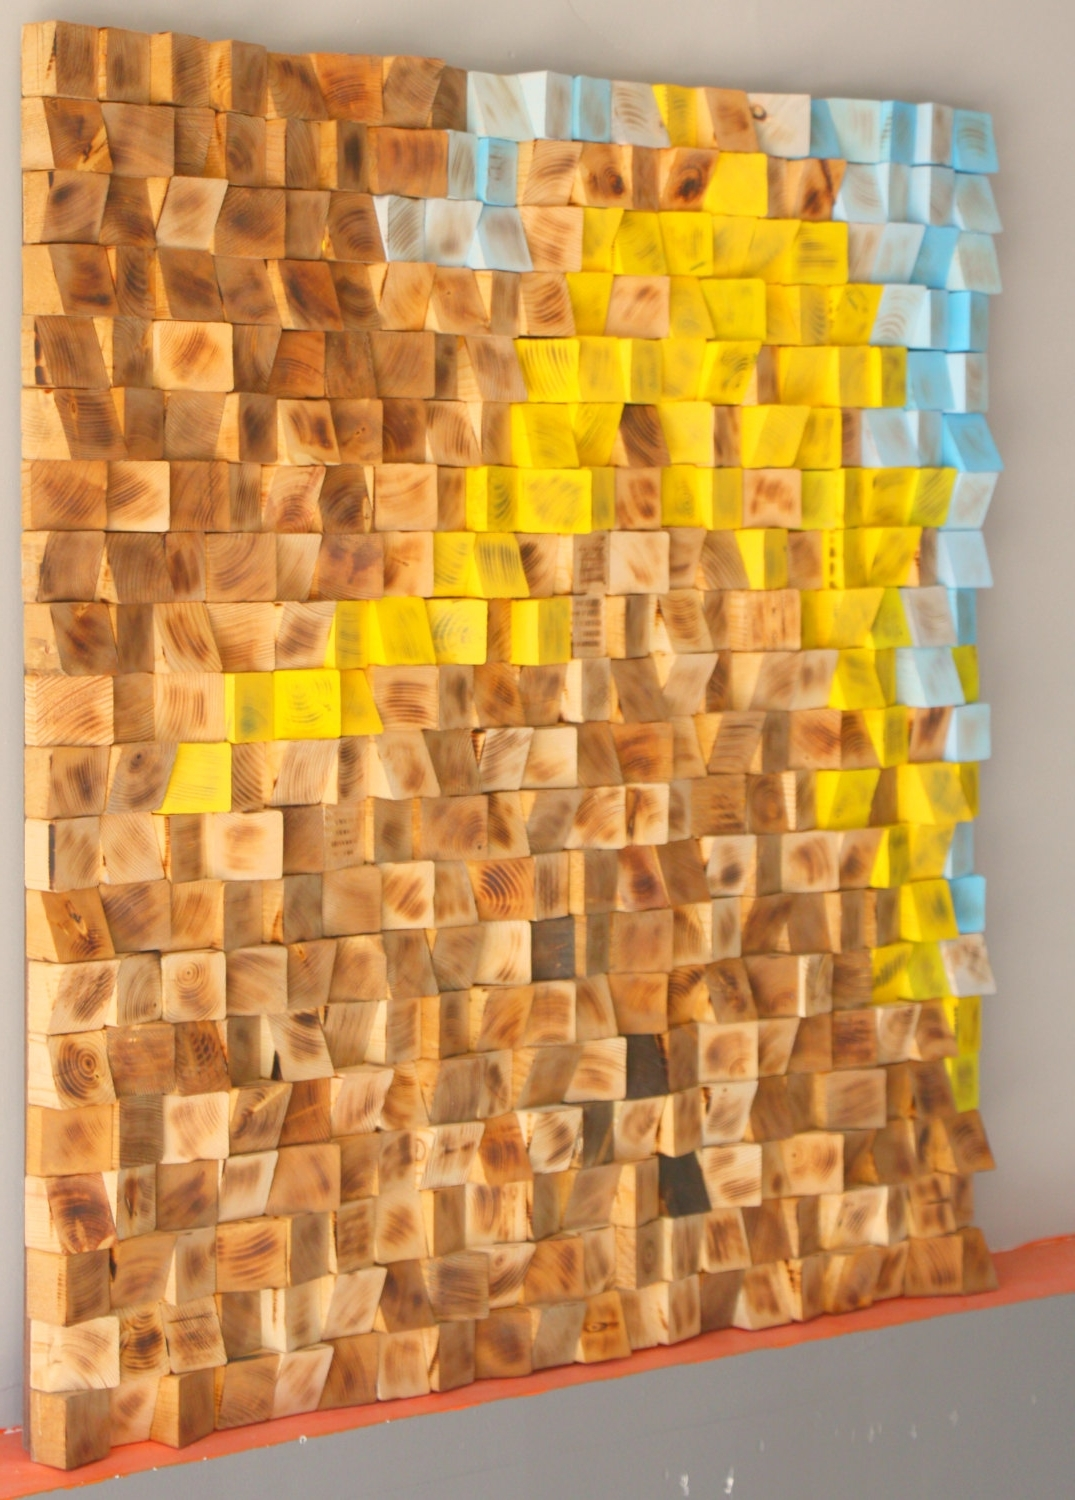 3D Wall Art Etsy Inside Popular Reclaimed Wood Wall Art, Wood Mosaic, Geometric Art, Wood Wall Art (View 2 of 15)